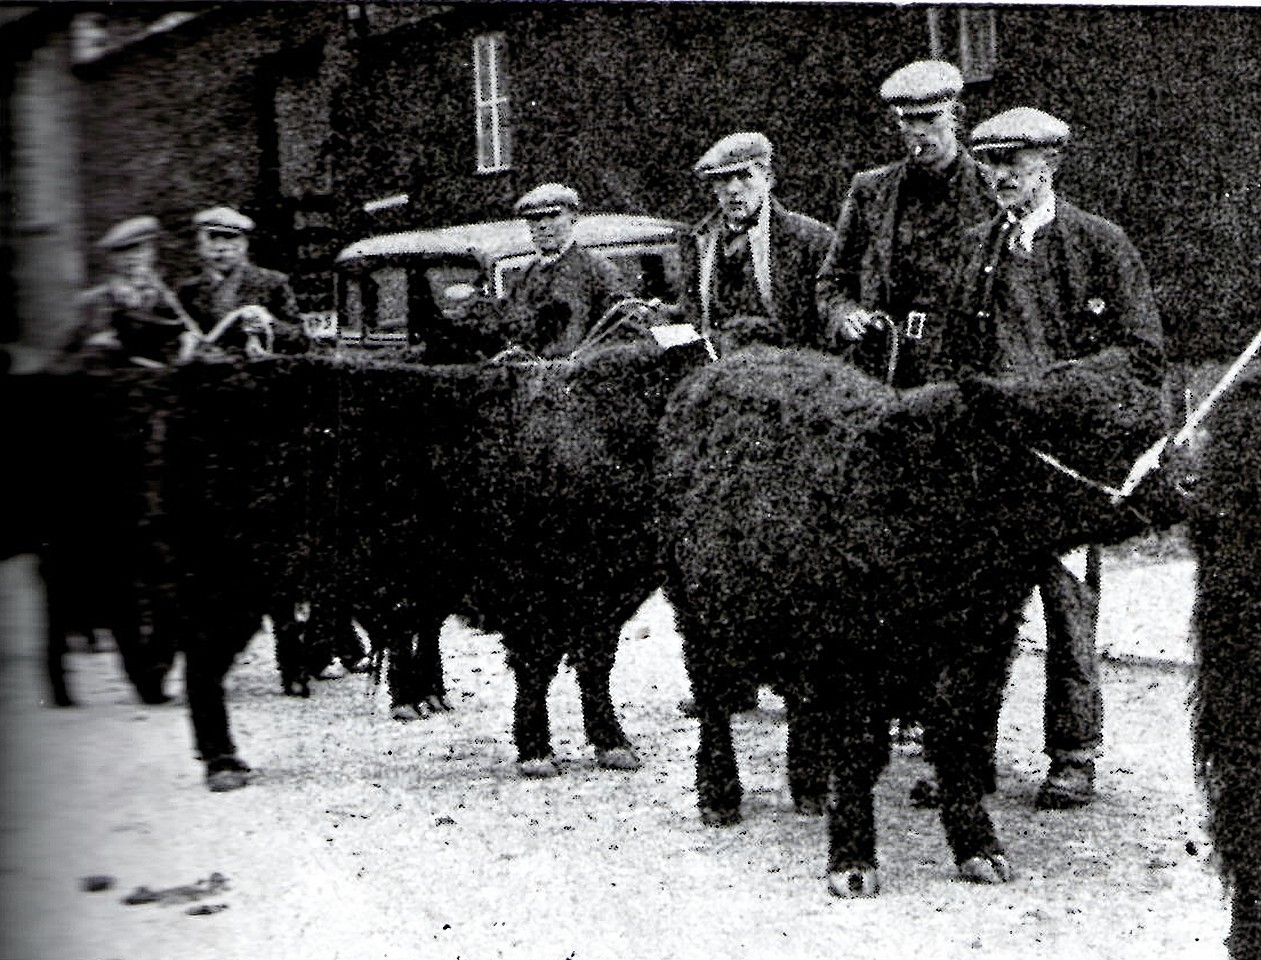 Galloways being shown during the war